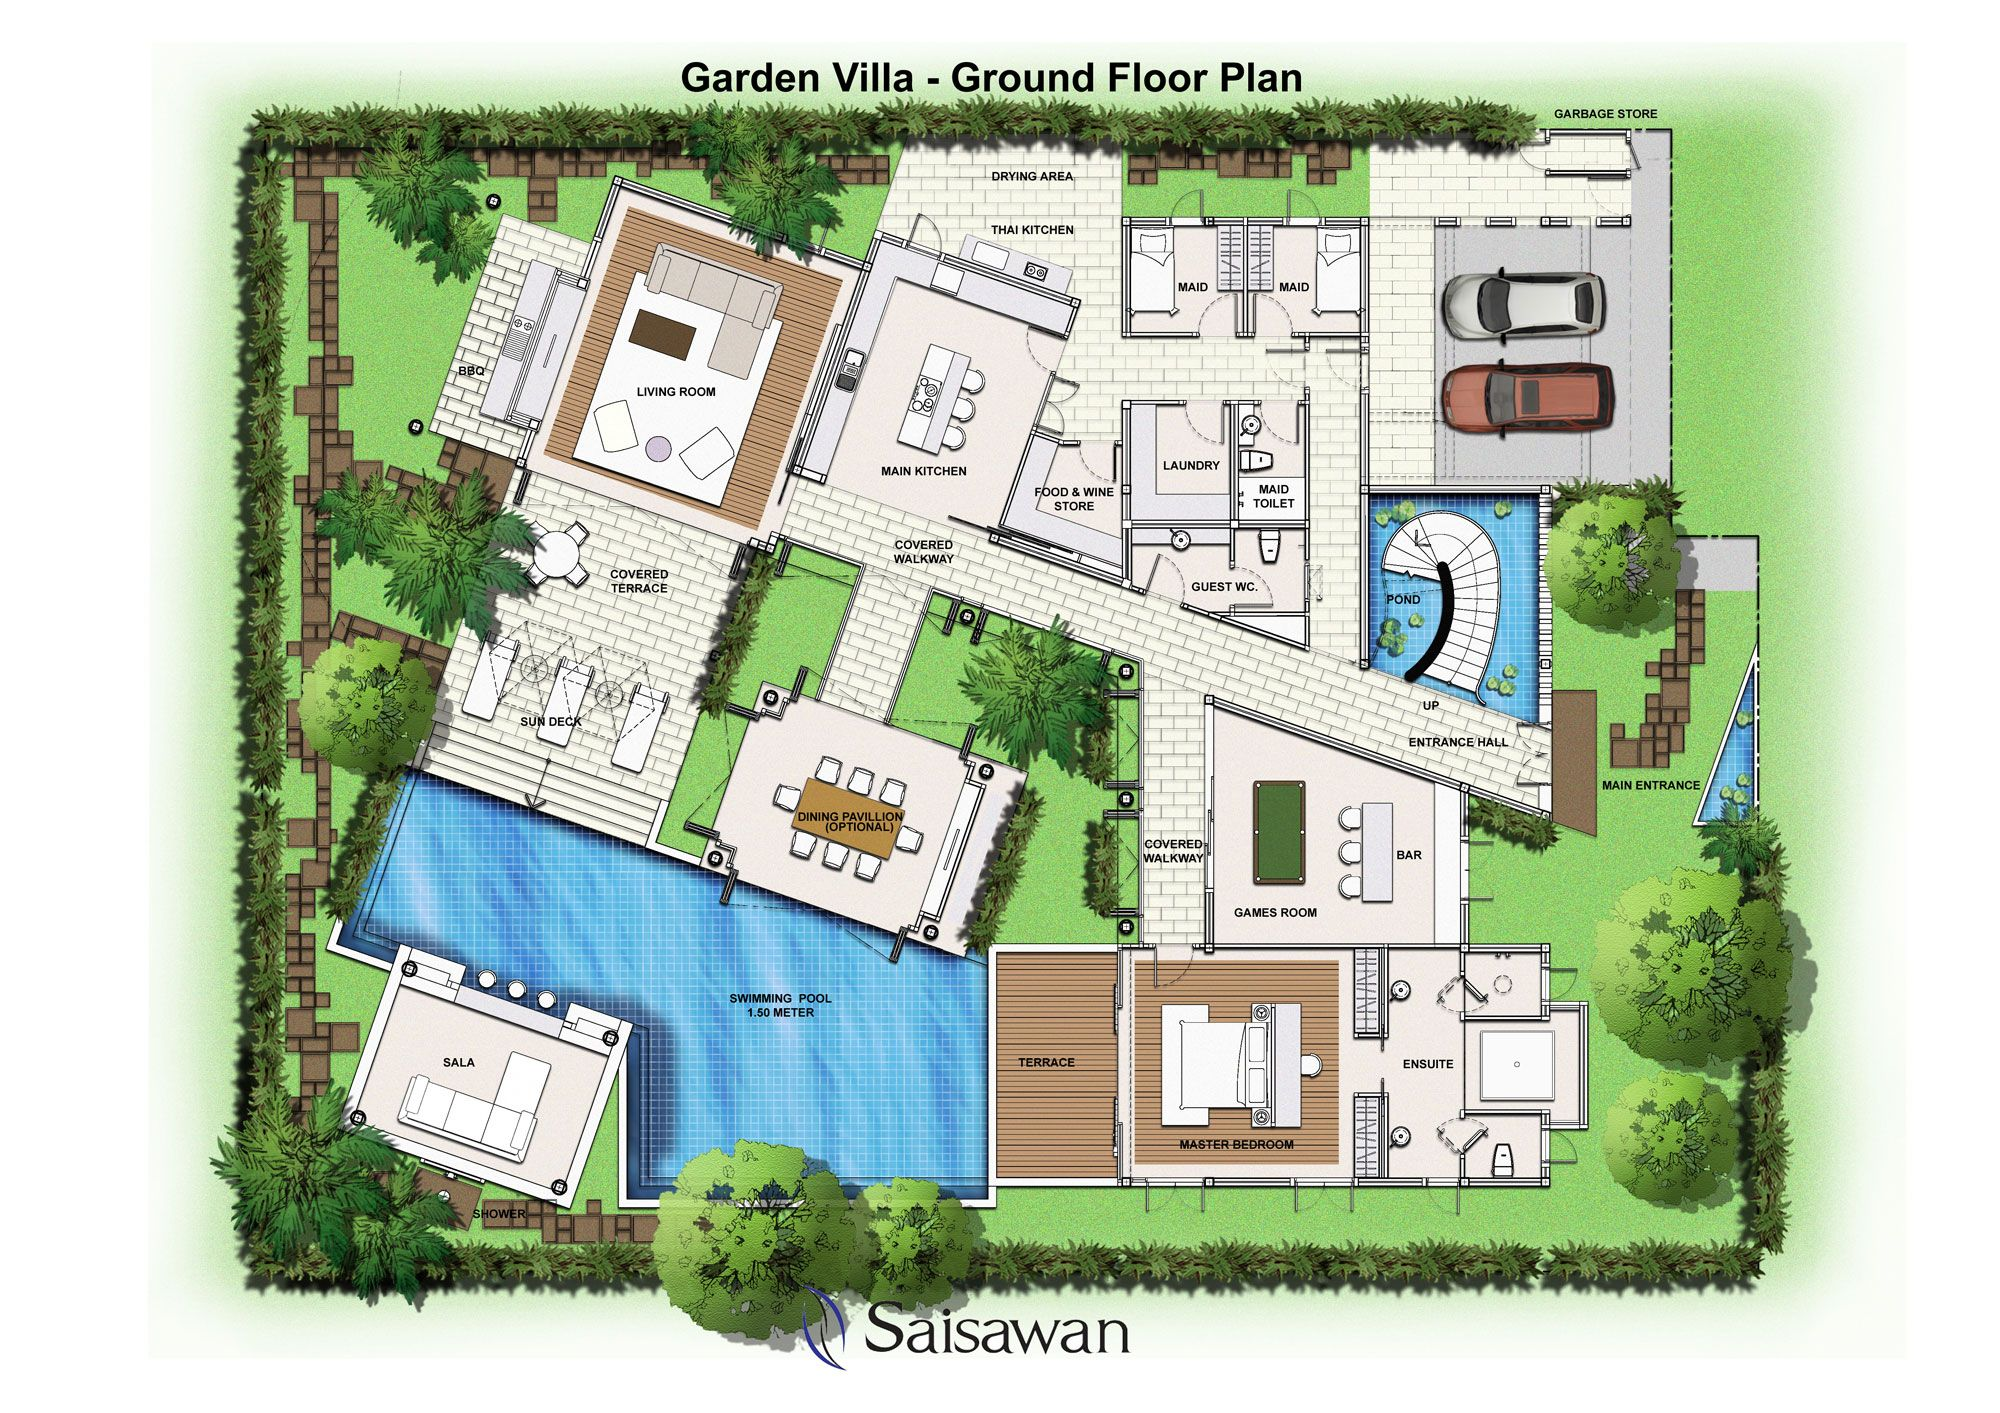 Saisawan garden villas ground floor plan house plans for Home garden design in pakistan